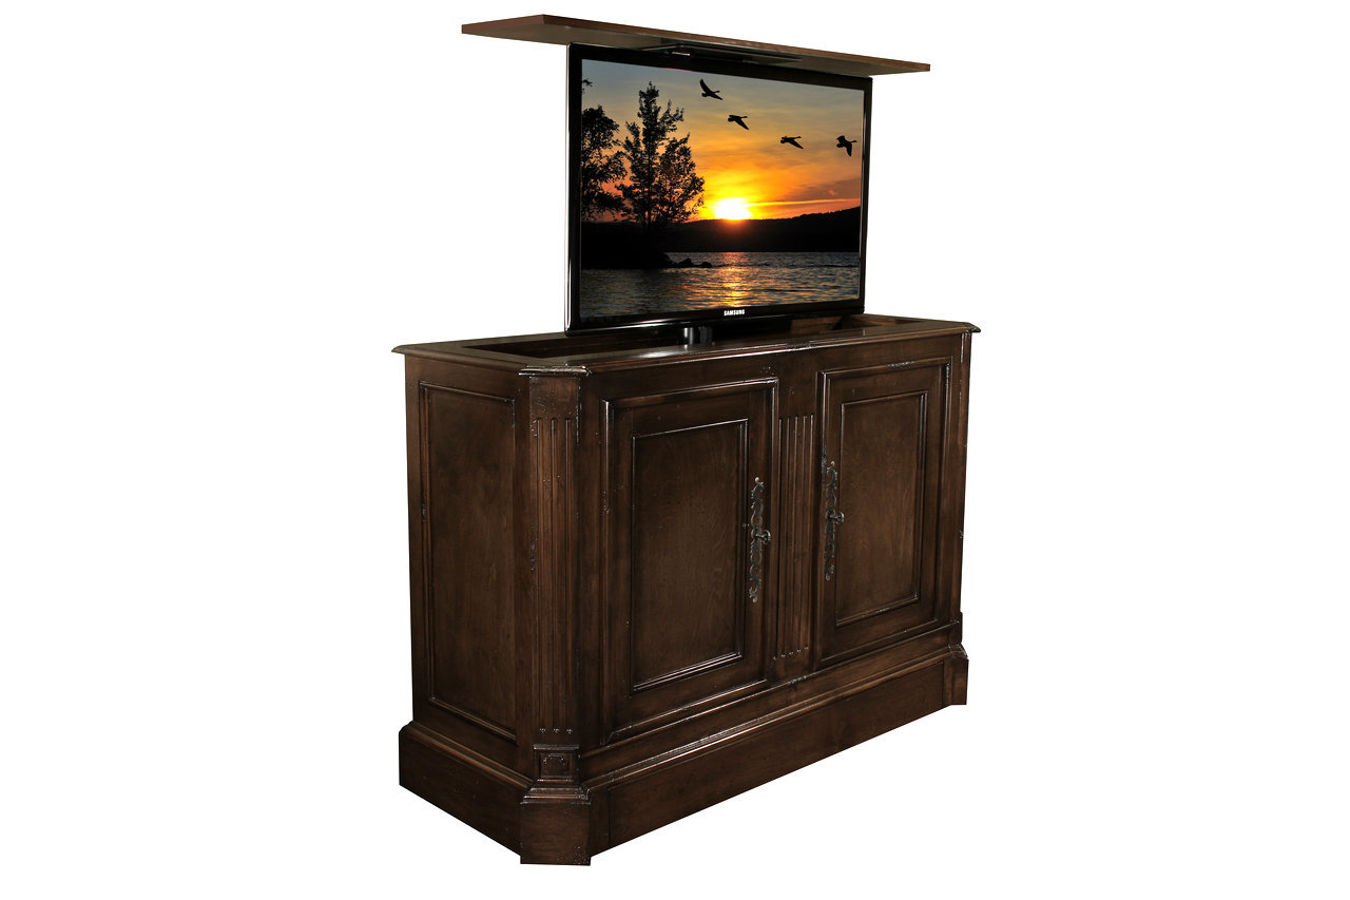 Sierra French Walnut Disappearing TV Cabinet - Flat Screen Tv Riser Sierra TV Lift Cabinets